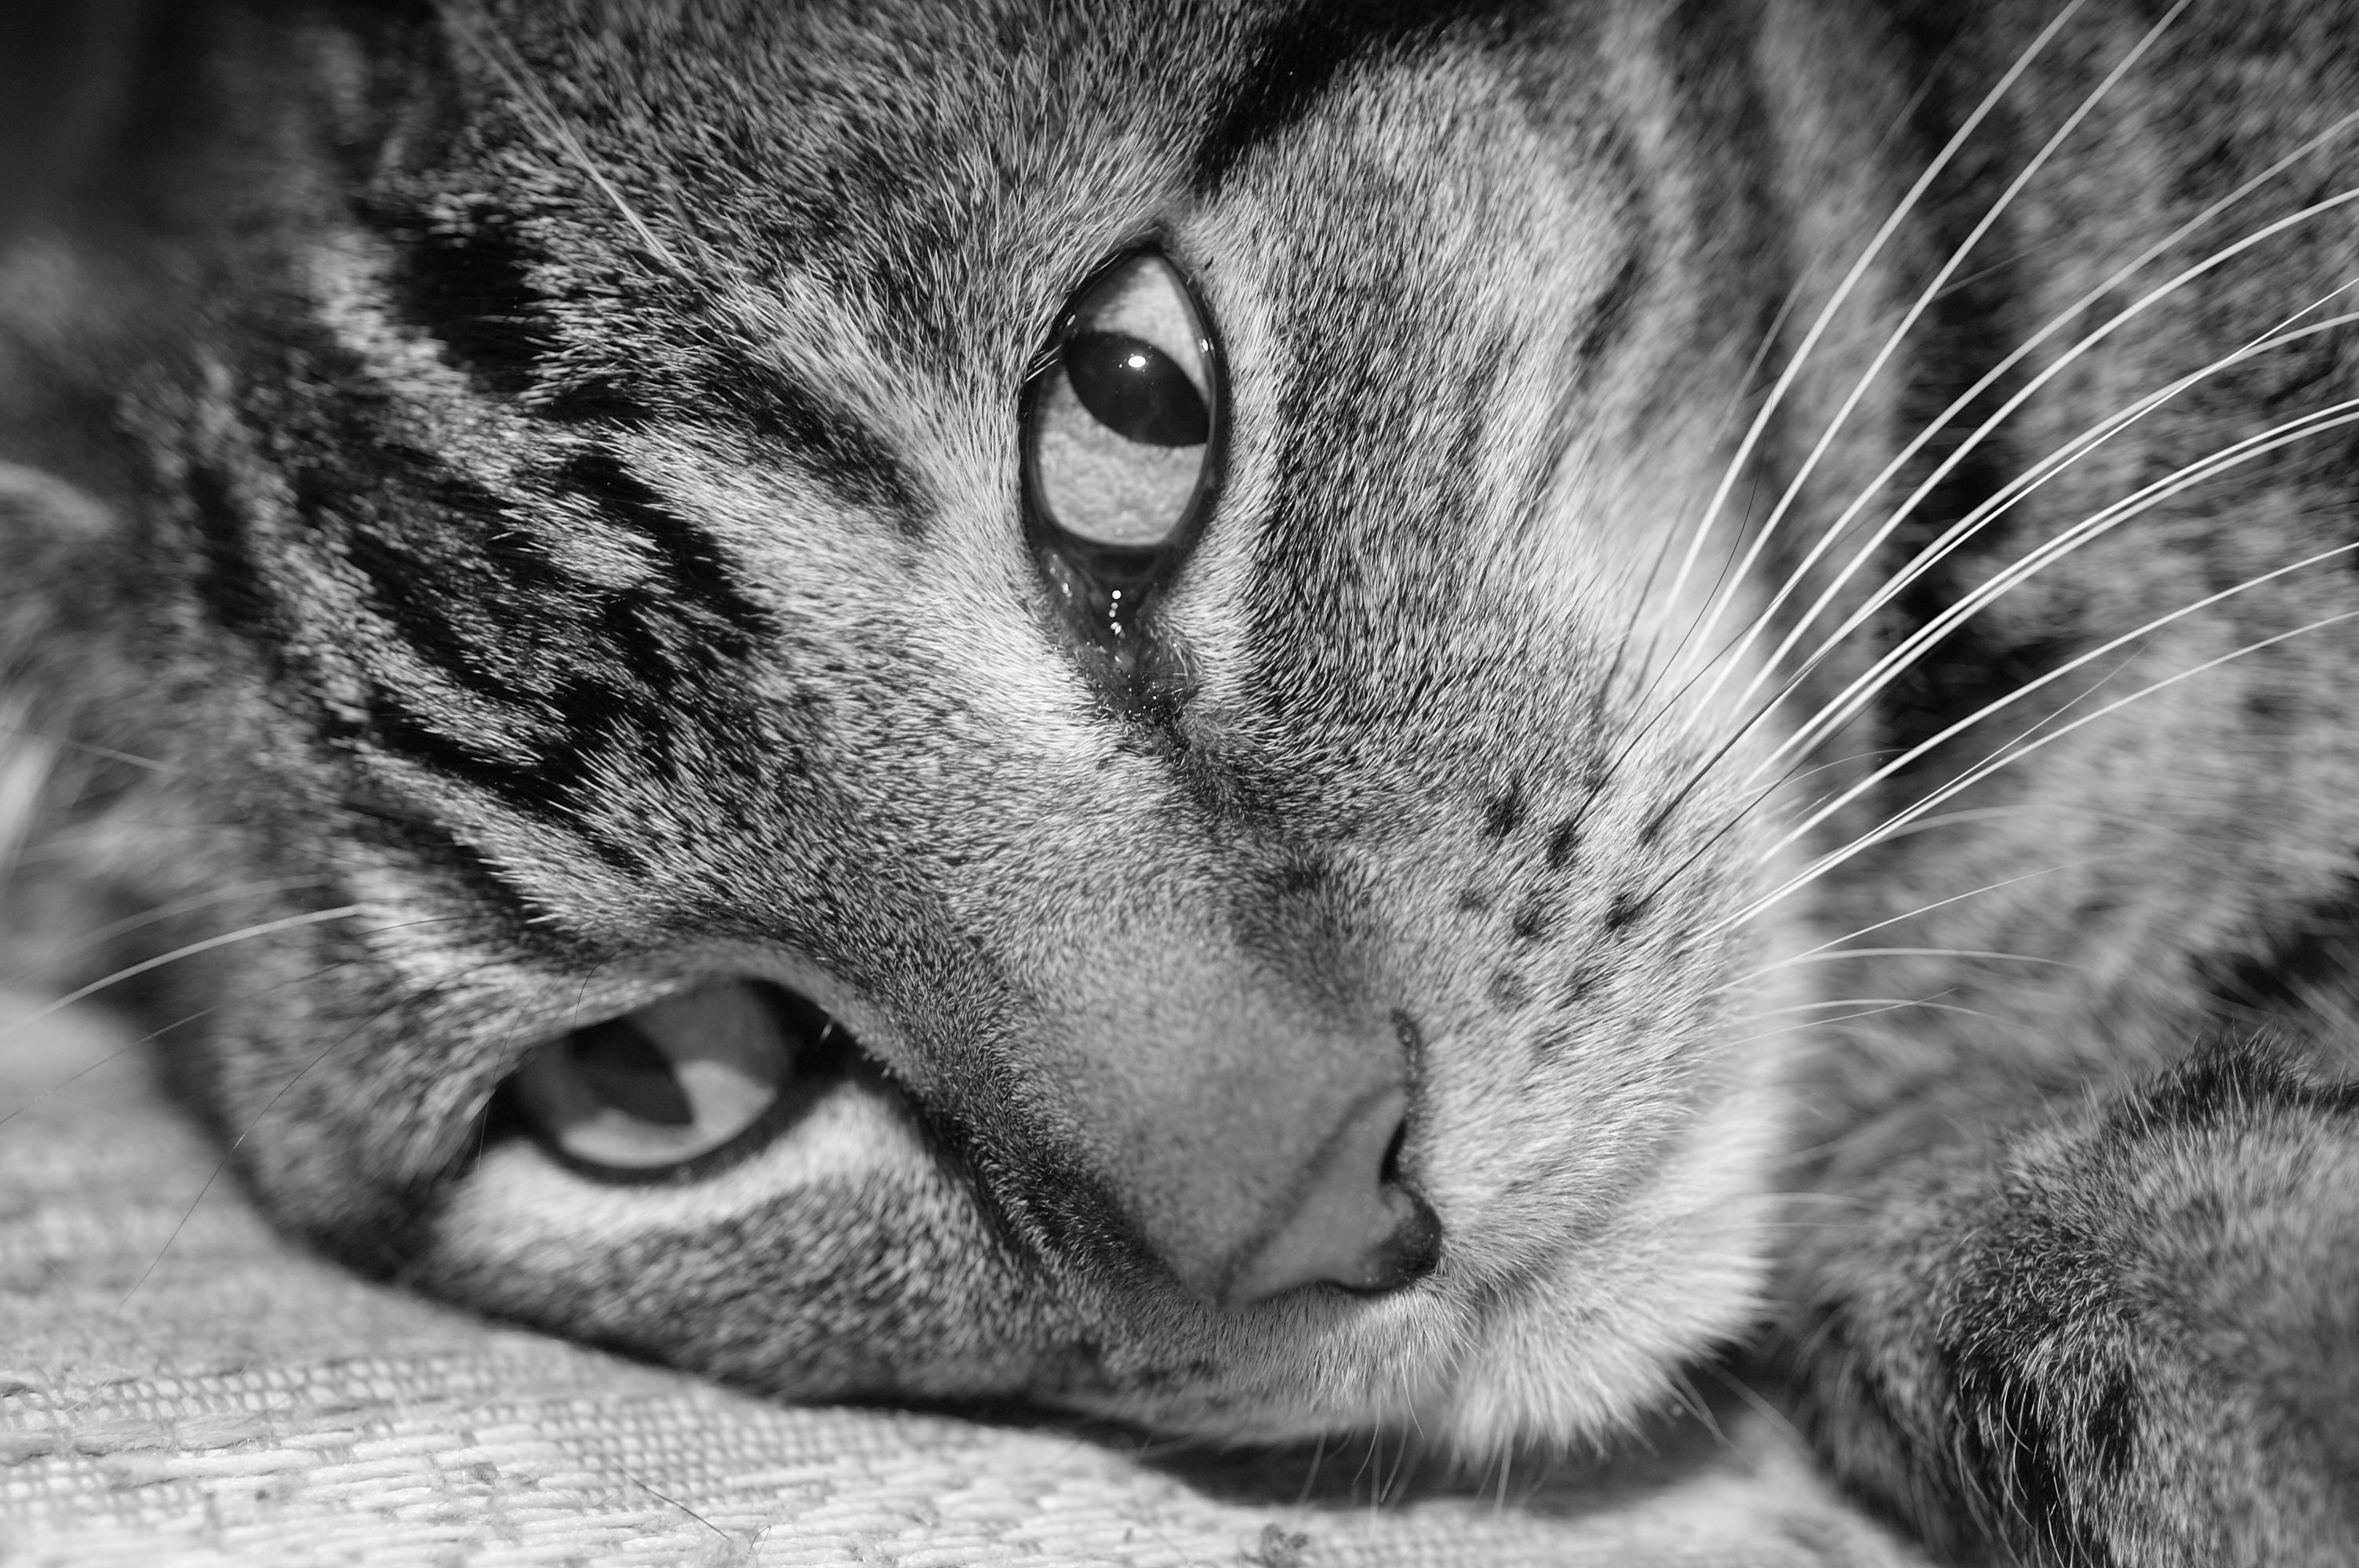 A black and white image of a tabby cat